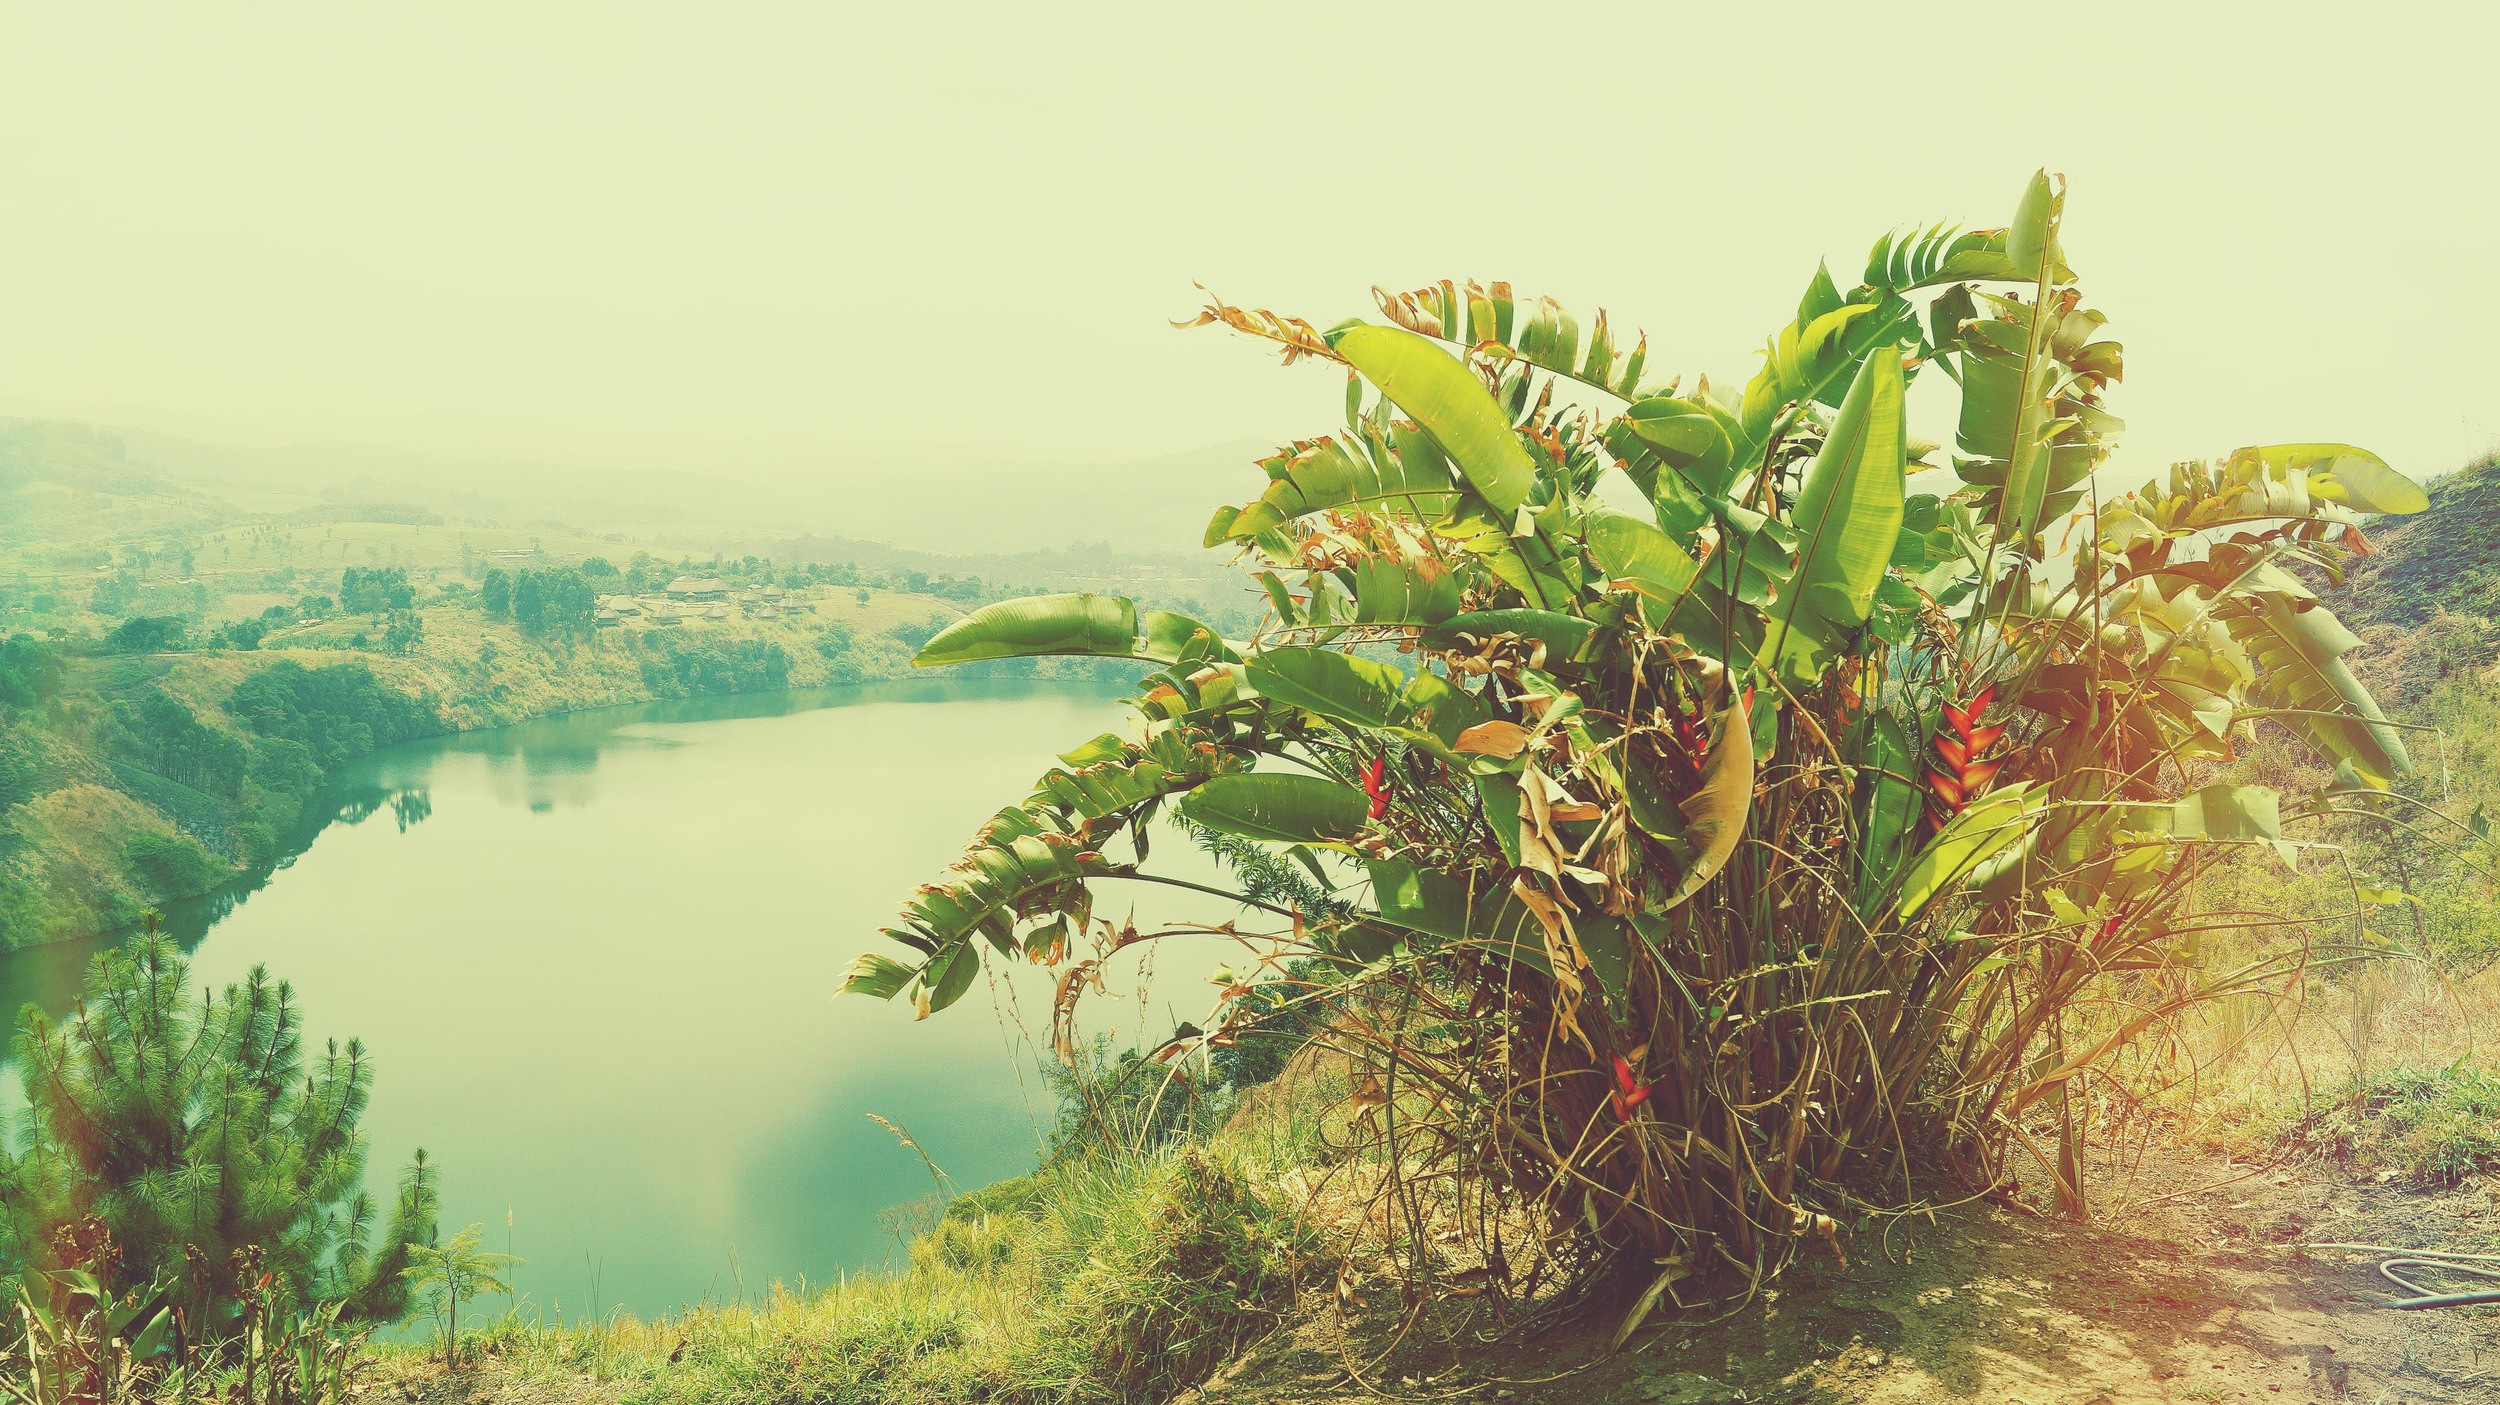 illumelation top of the world uganda crater lakes kibale forest view.jpg